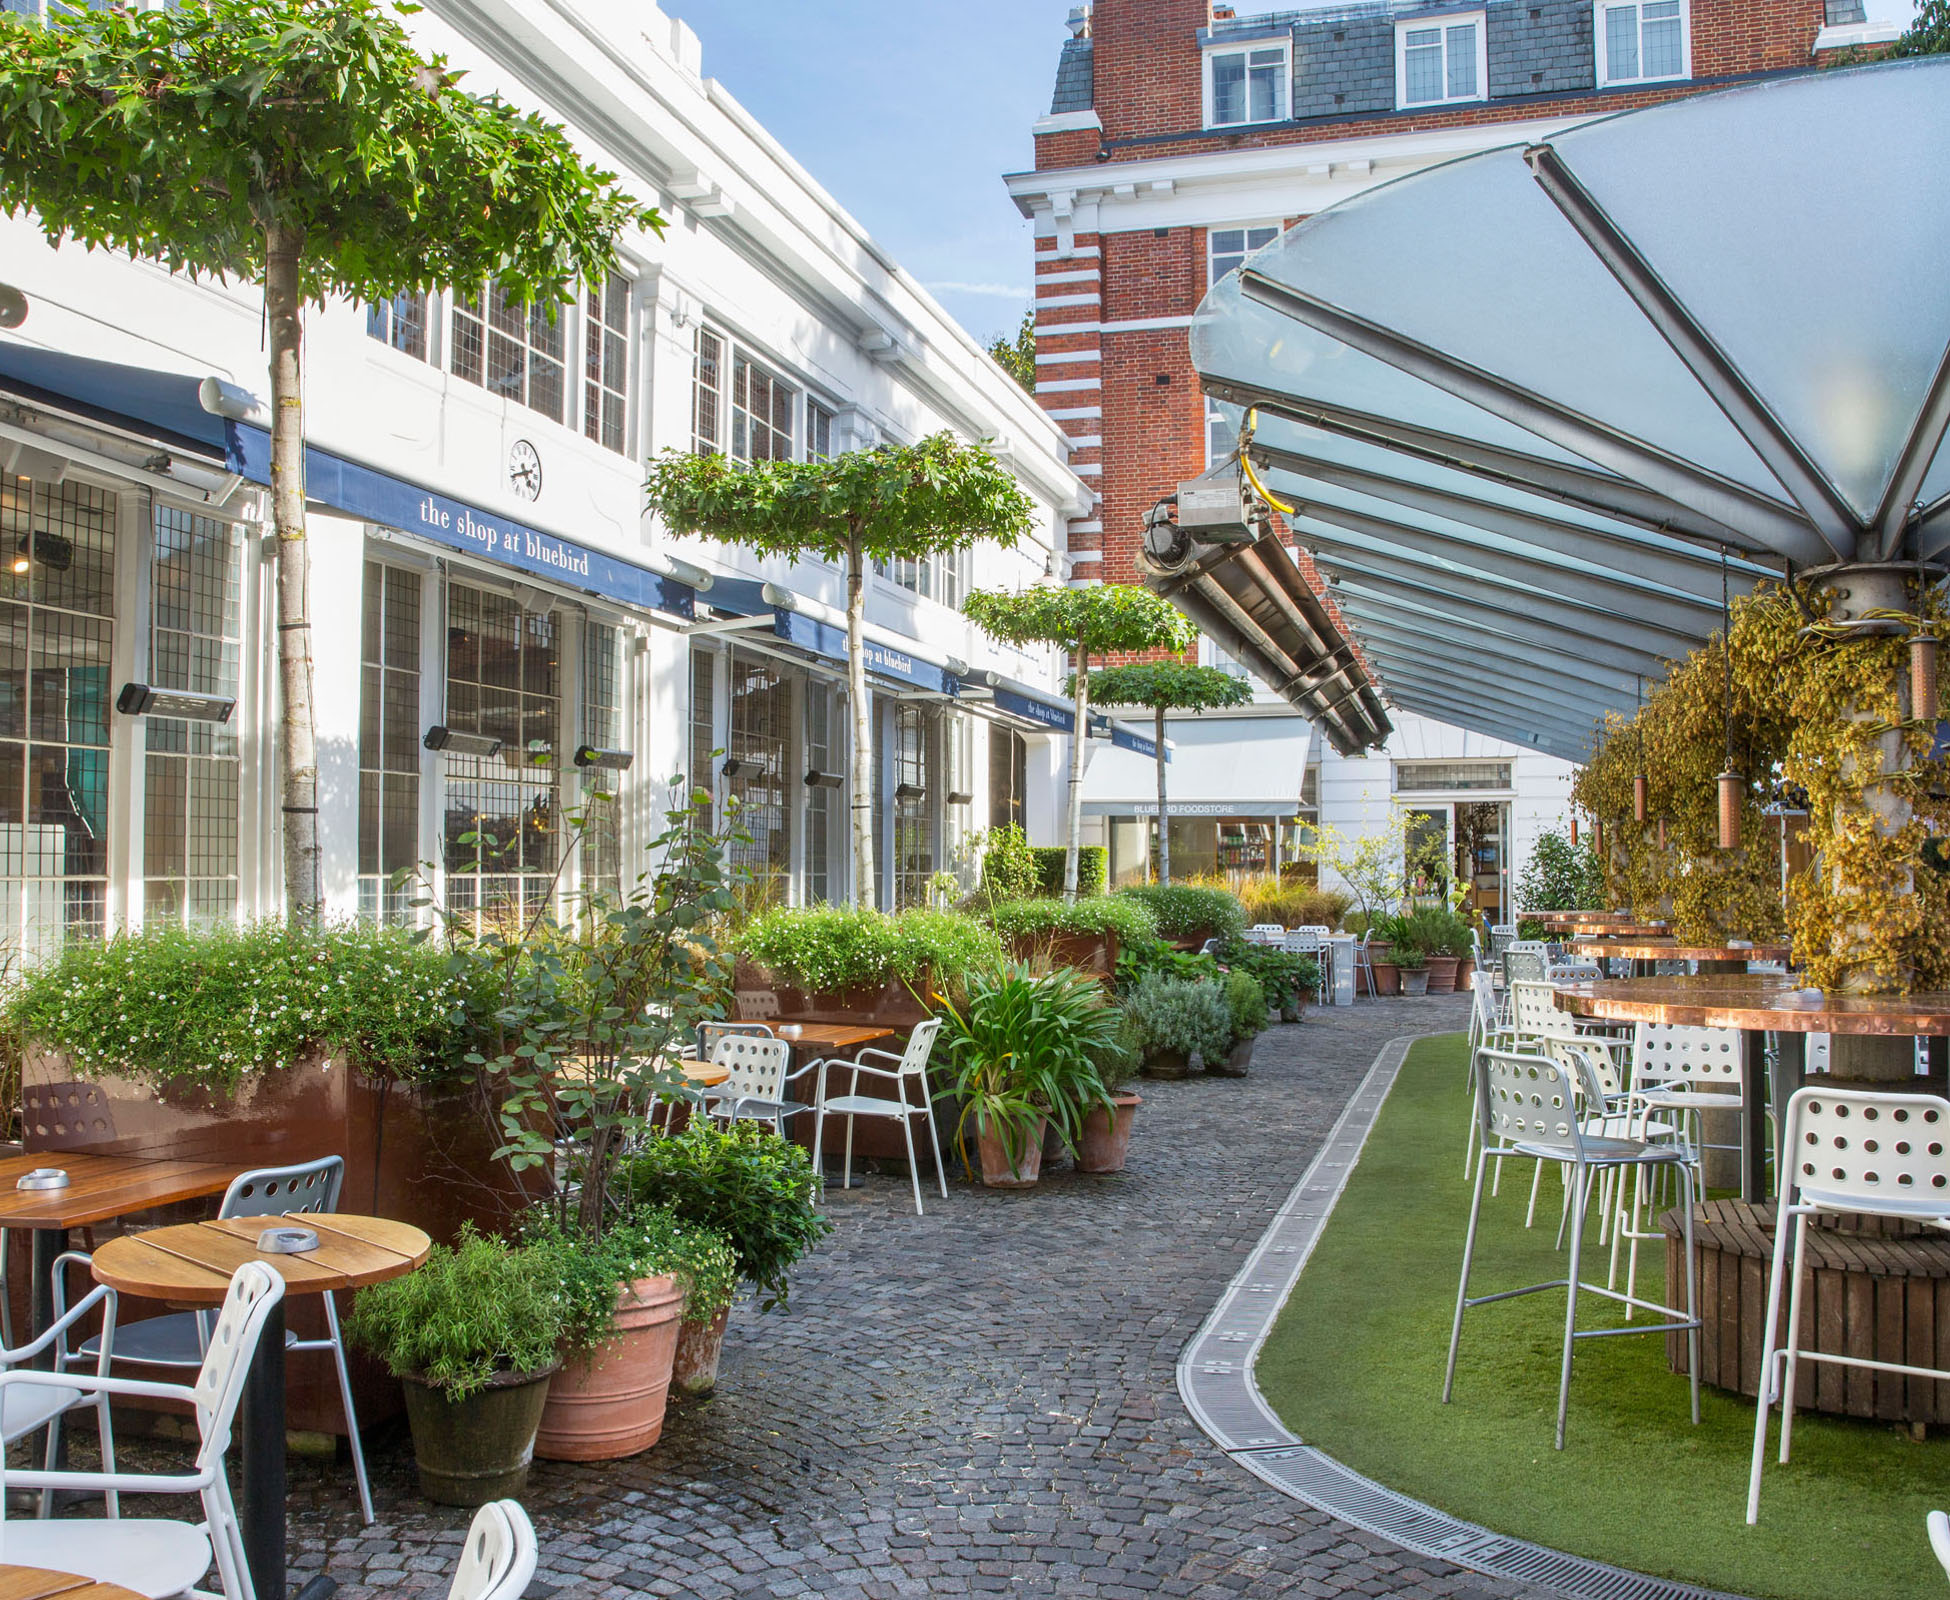 "The Courtyard at Bluebird has been designed to create intimate spaces between the ""parasol' trees and clusters of pots"